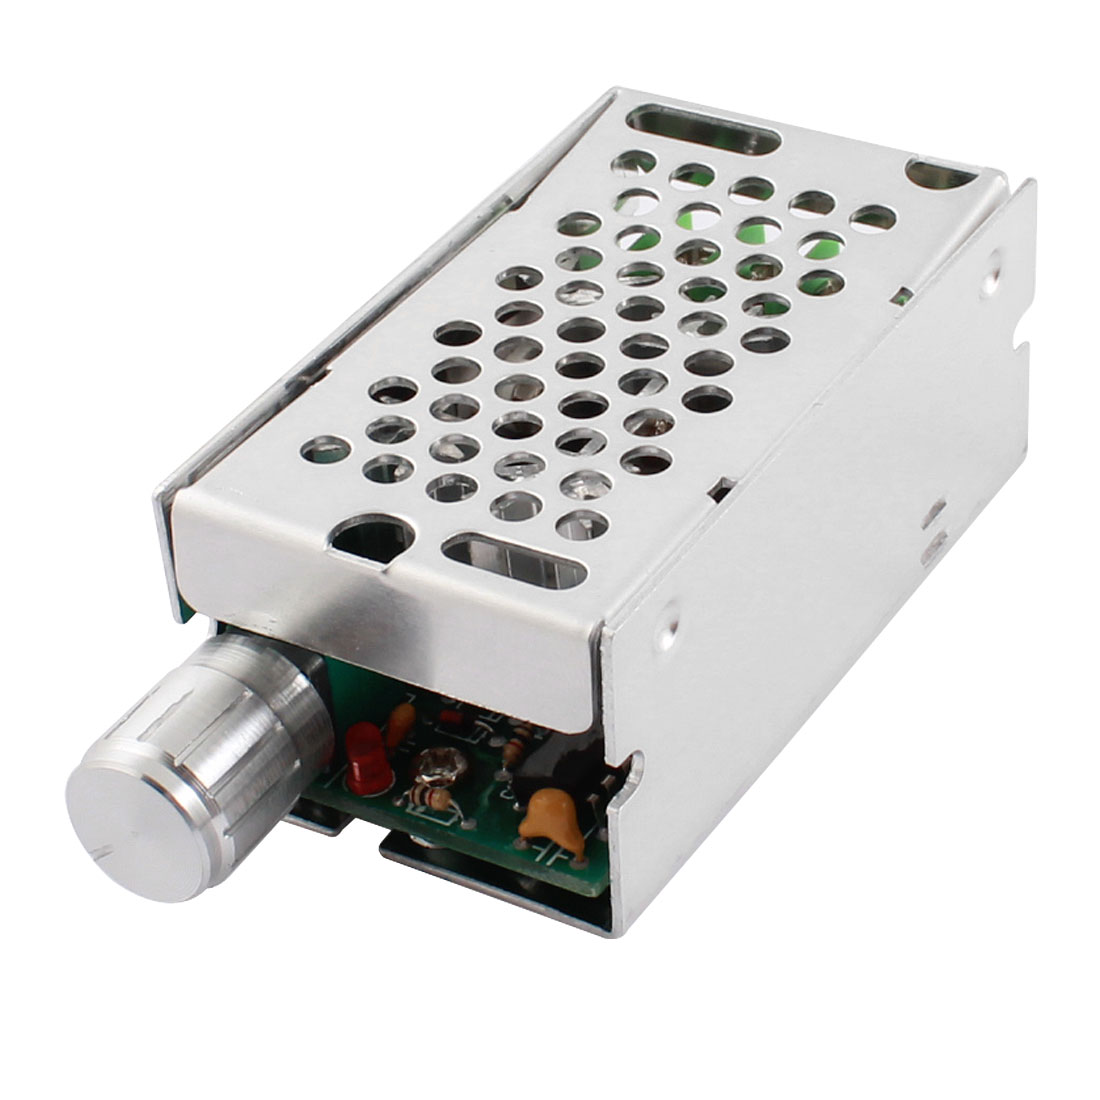 DC12-40V 8A 400W Rectangle Aluminum Case Rotary Adjustable Potentiometer Switch PWM Motor Speed Controller Governor